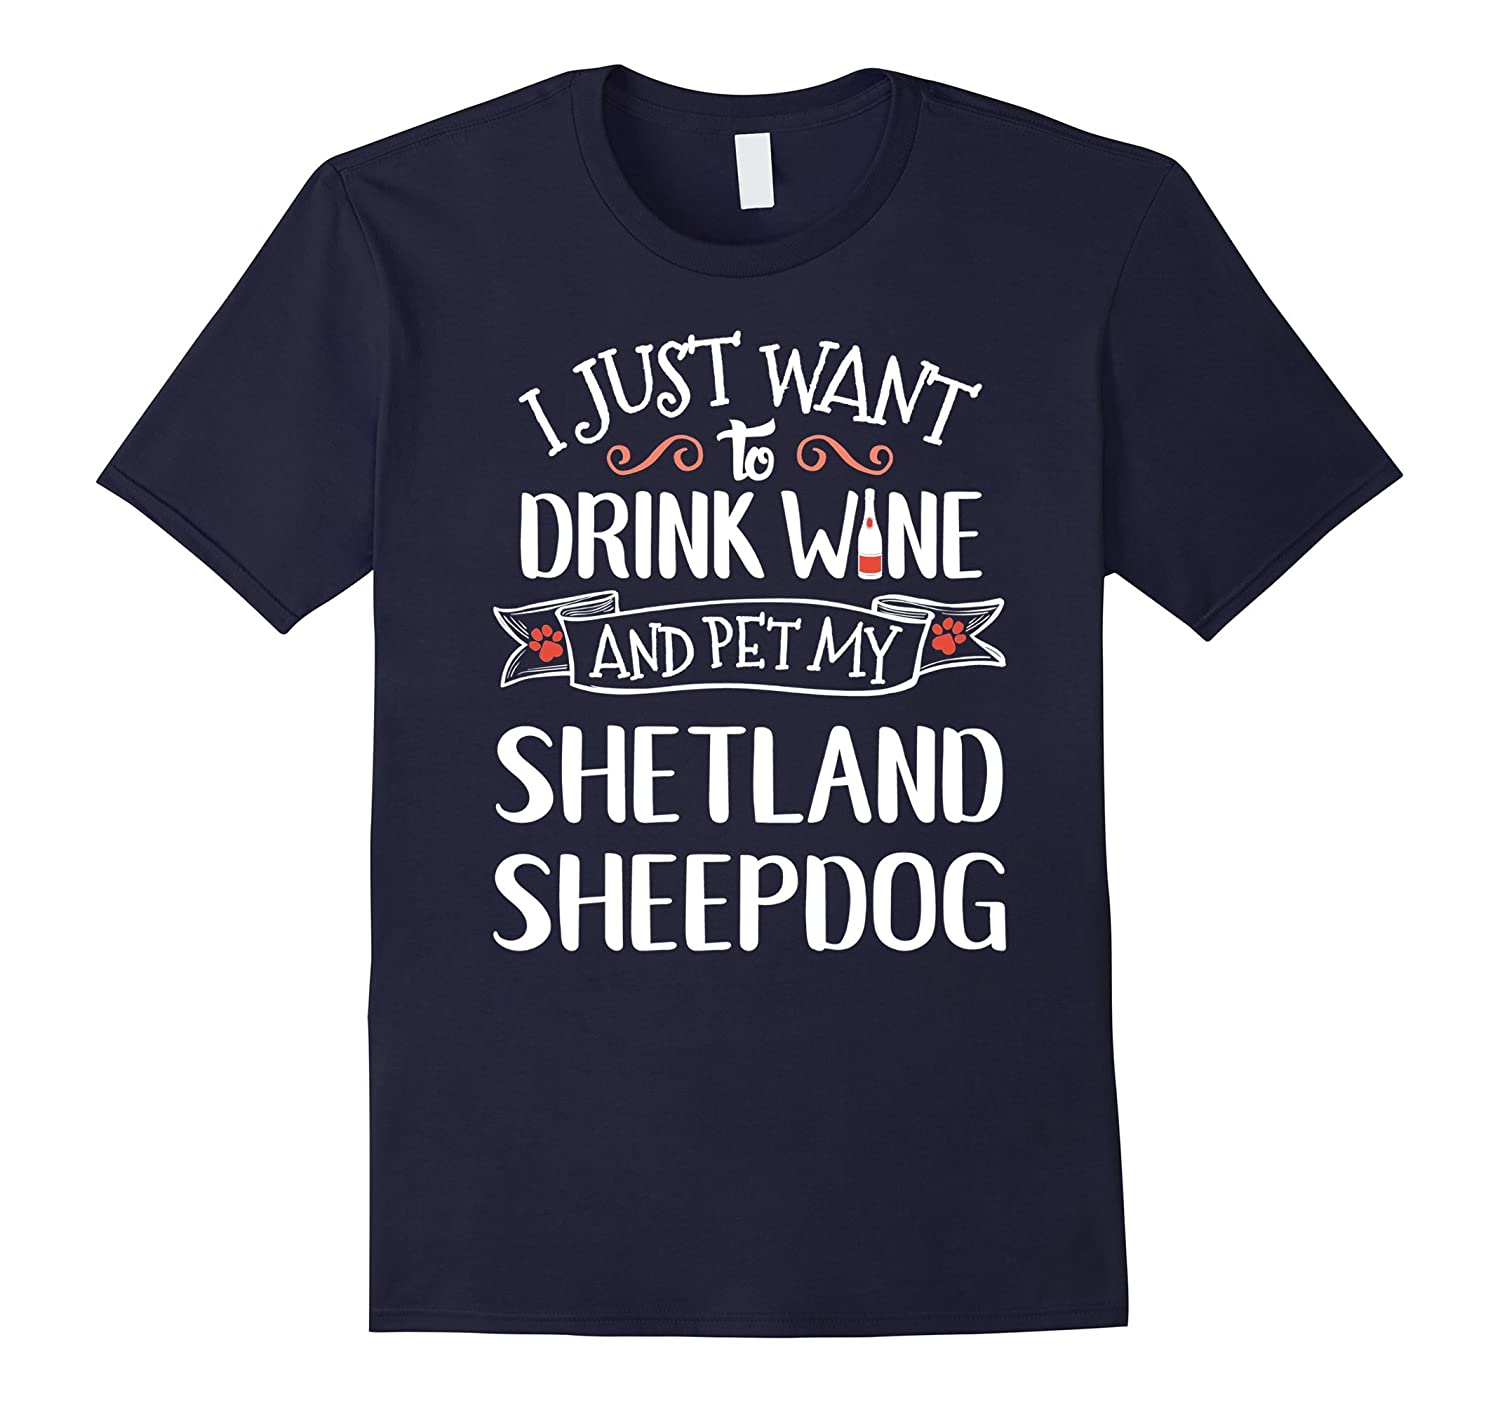 Shetland Sheepdog T-Shirt for Wine Lovers  Dog Owners